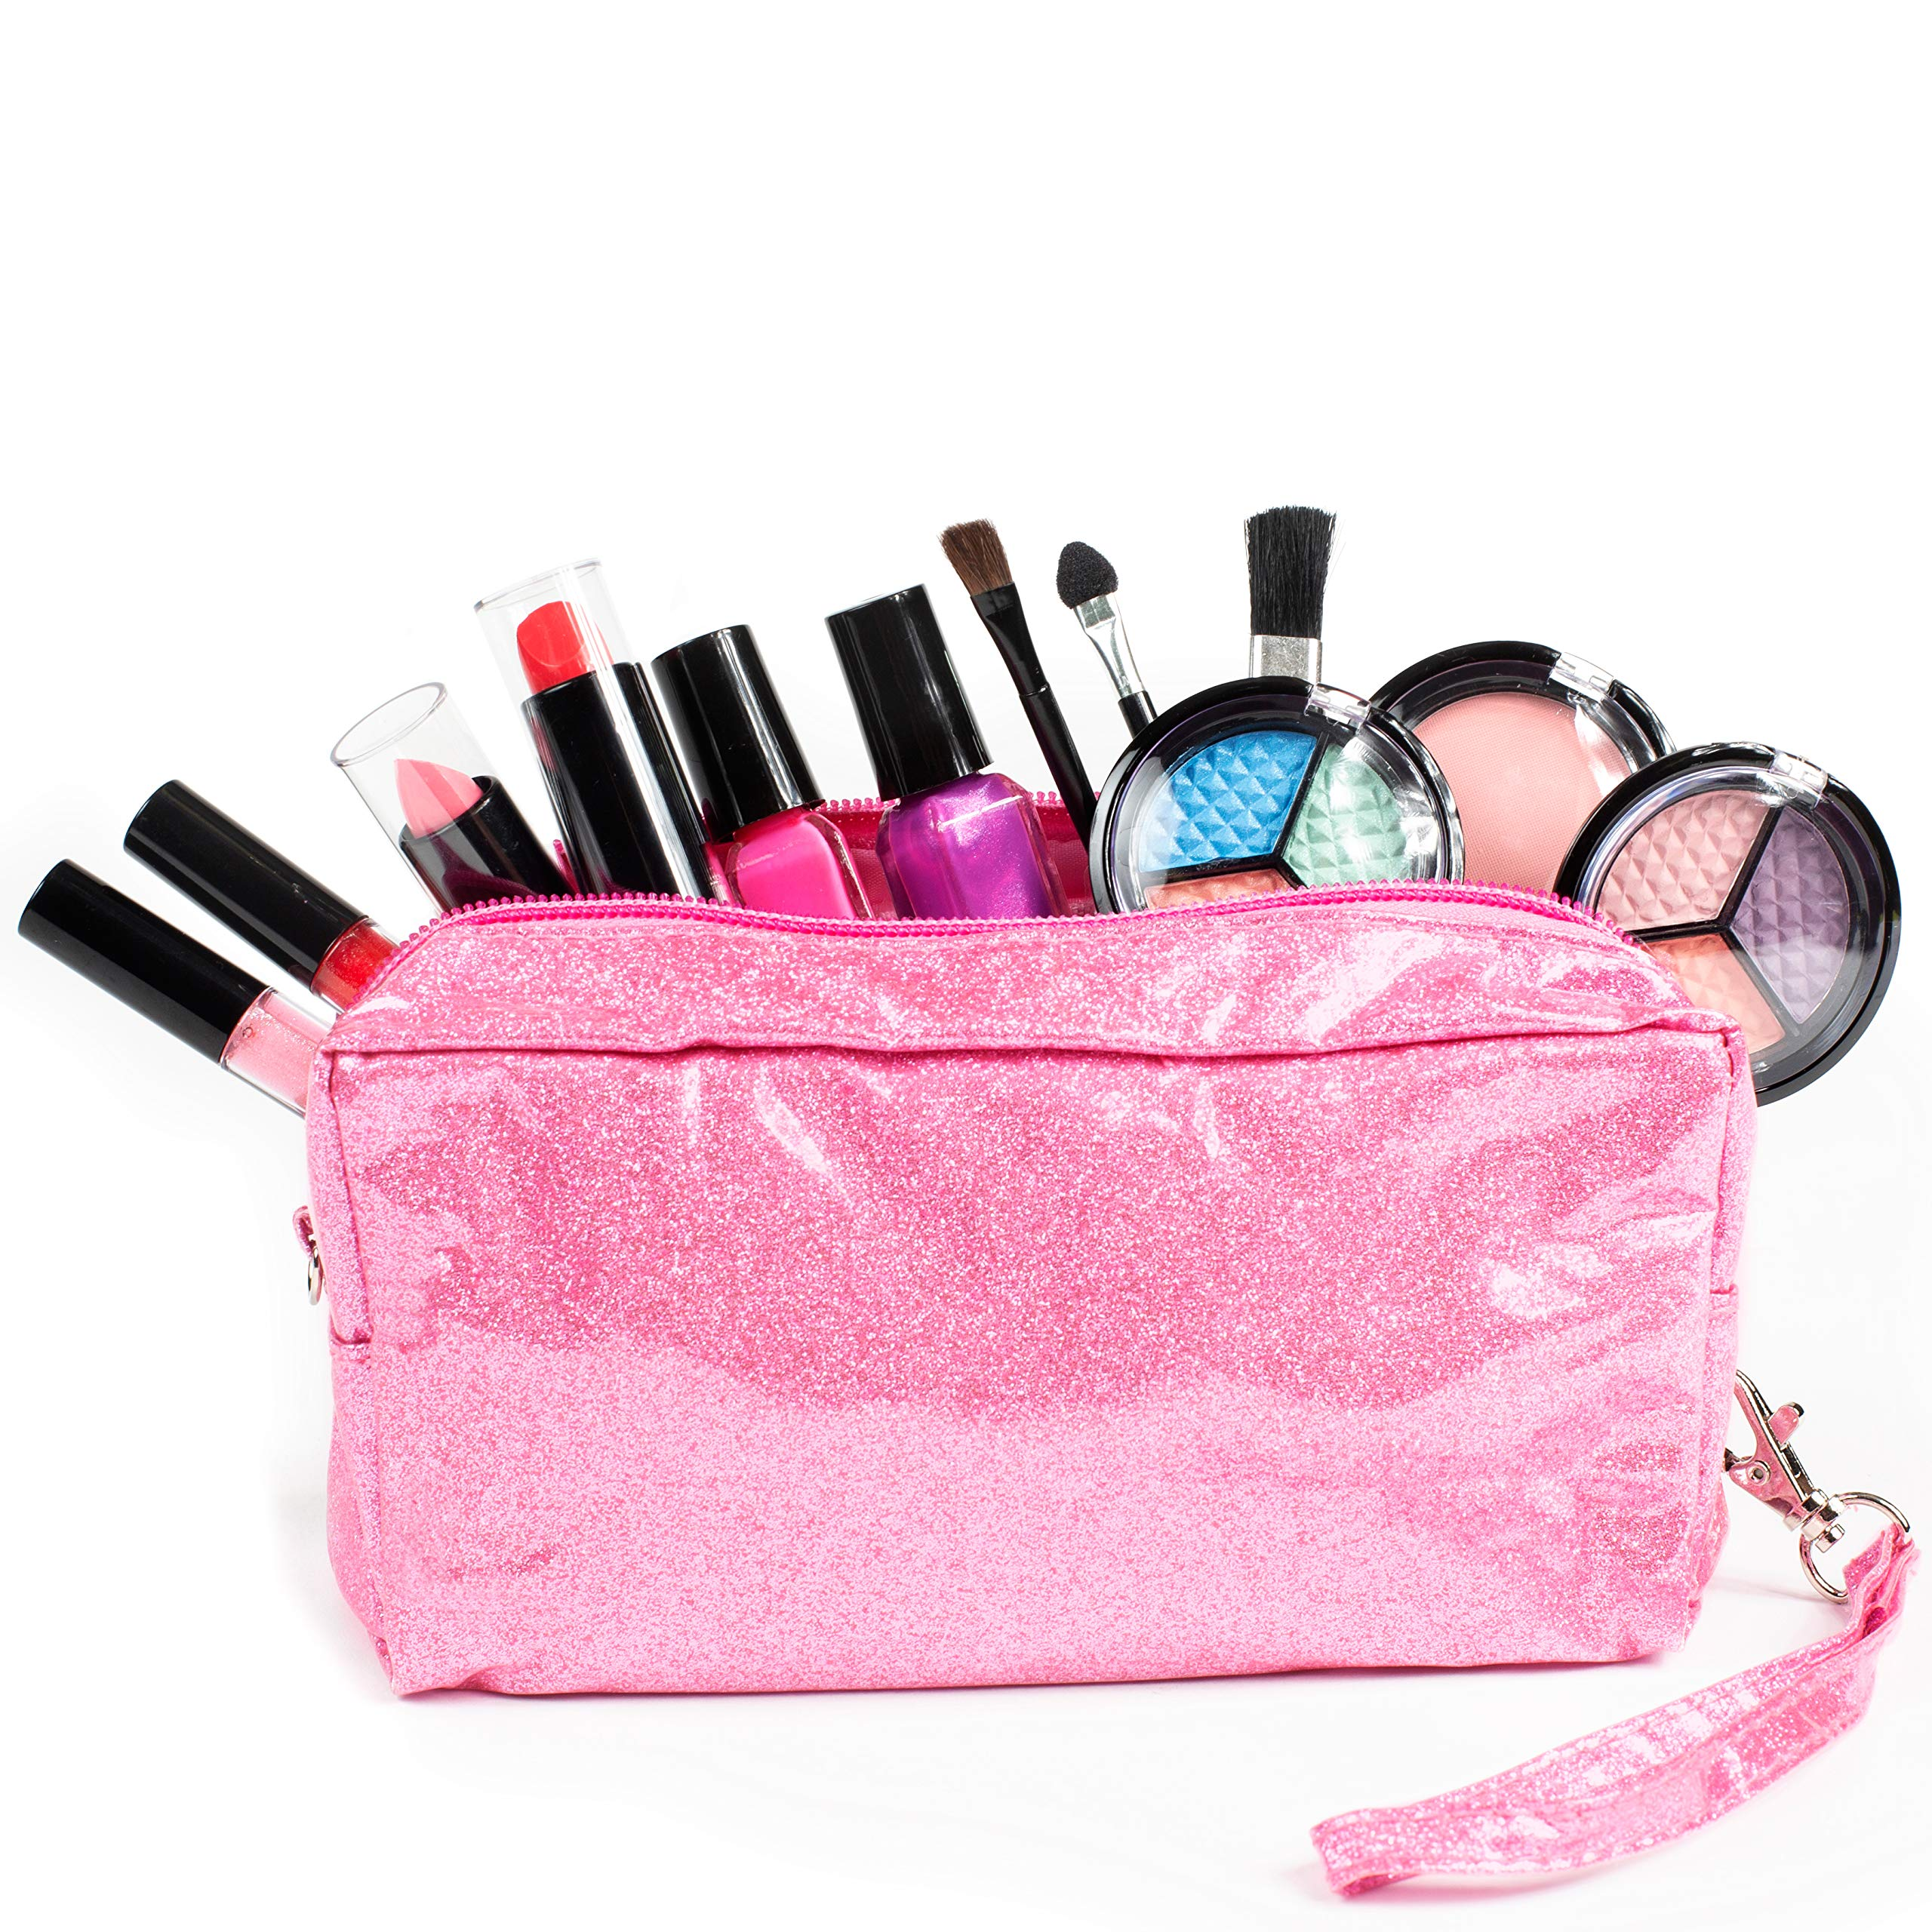 SmartEmily Girls Toys - Kids Vanity Set with Glitter Cosmetic Bag, Perfect Play Kit for Girls and Teens, Washable and Non-Toxic, Real Play Make up, Pink